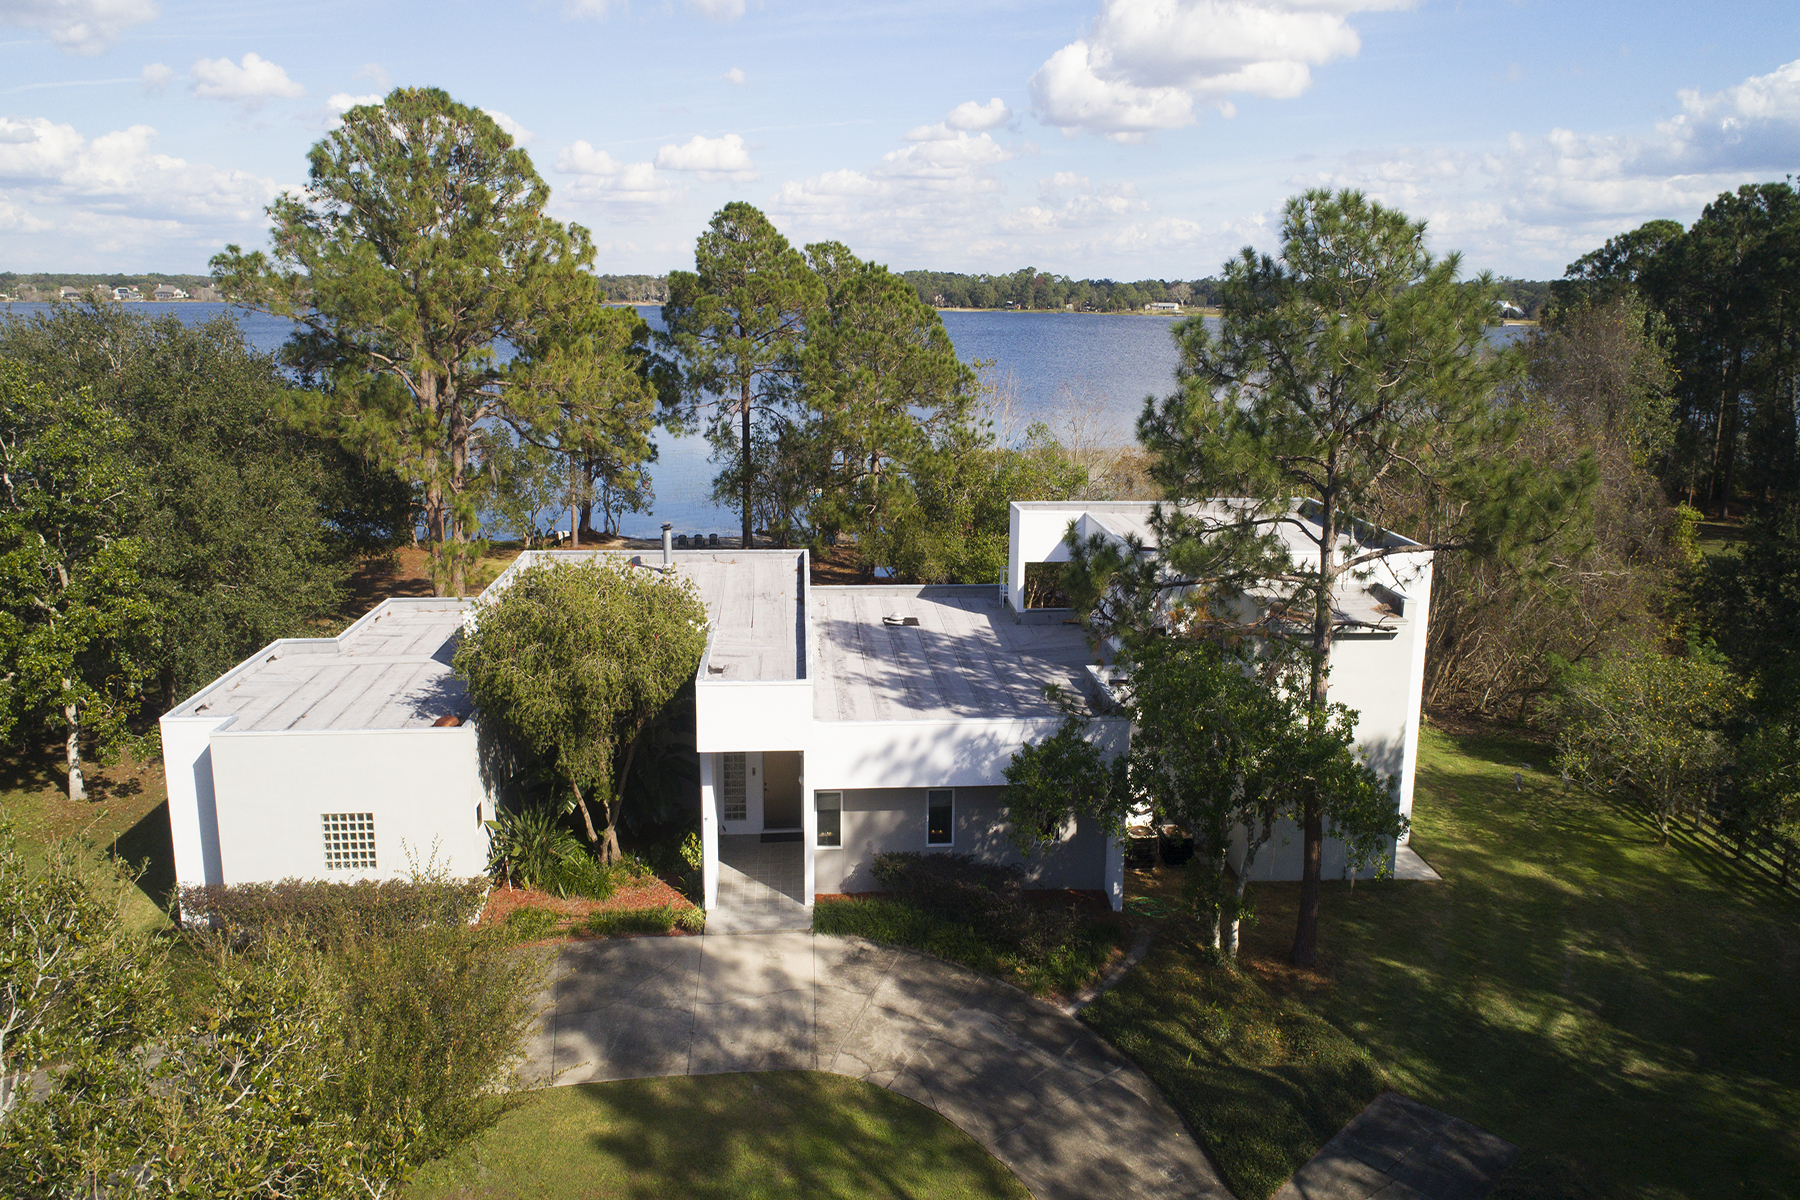 Single Family Home for Sale at ORLANDO - EUSTIS 1565 Lakeview Rd, Eustis, Florida, 32726 United States